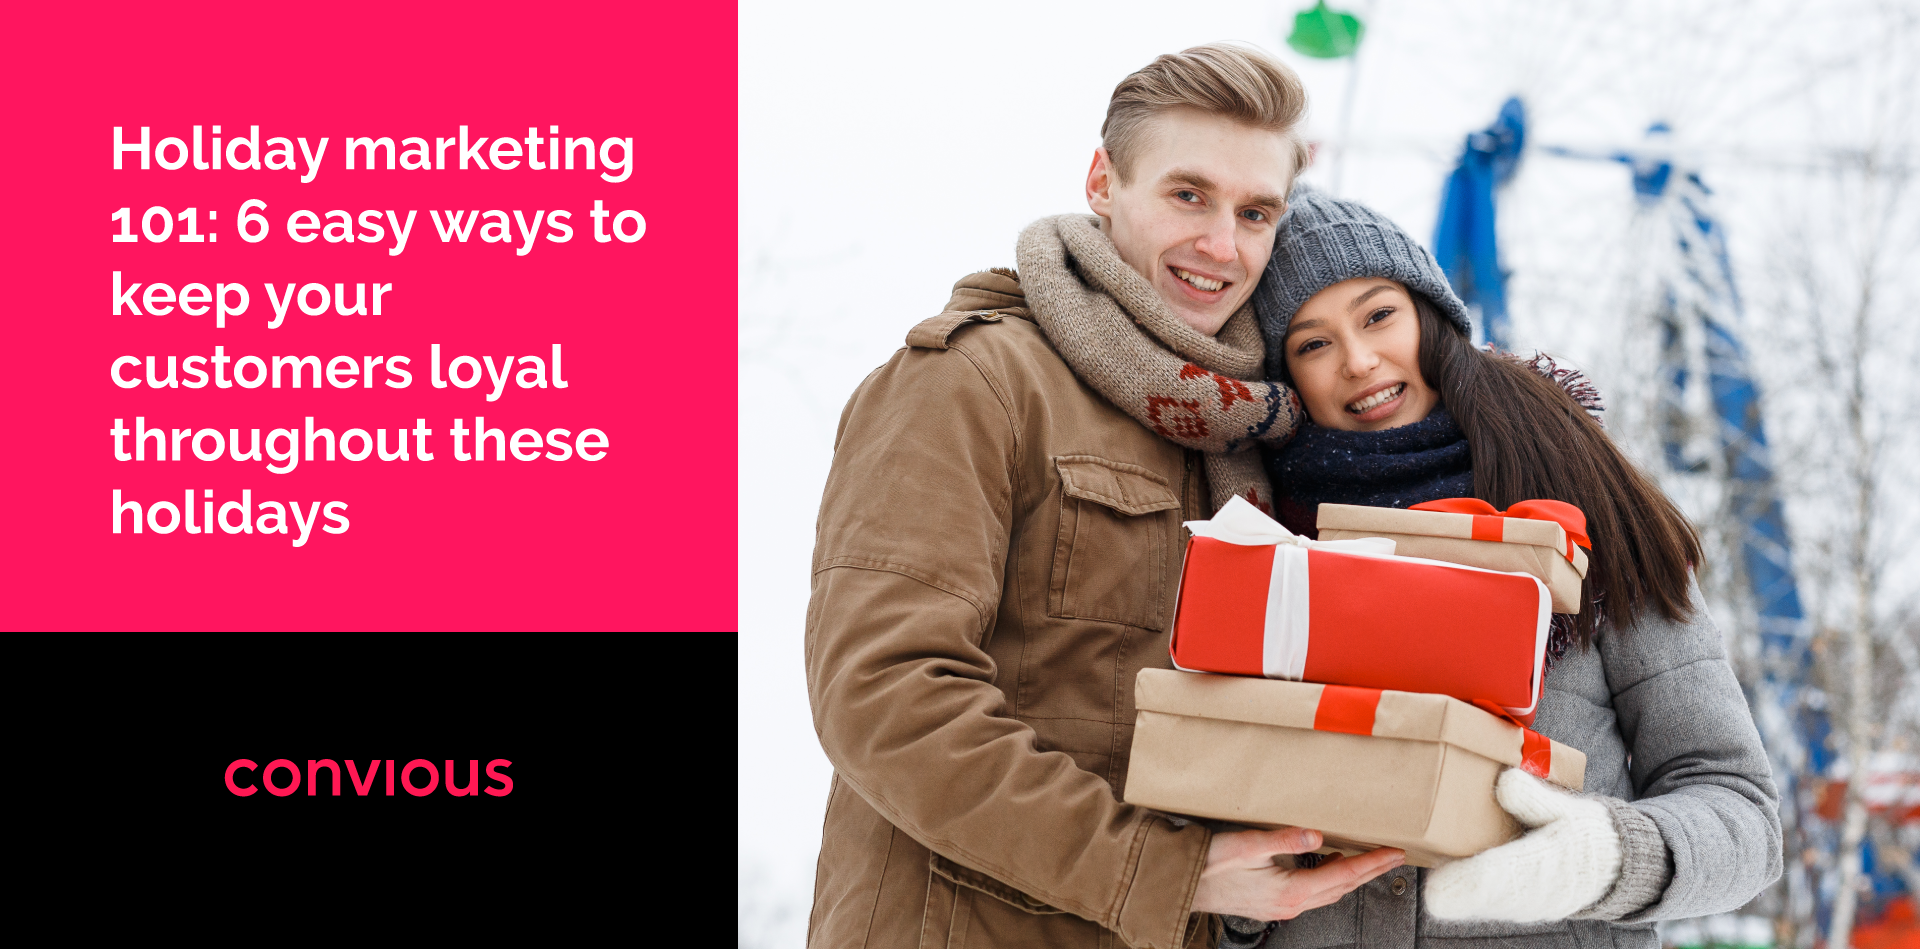 Holiday marketing 101: 6 easy ways to keep your customers loyal throughout these holidays